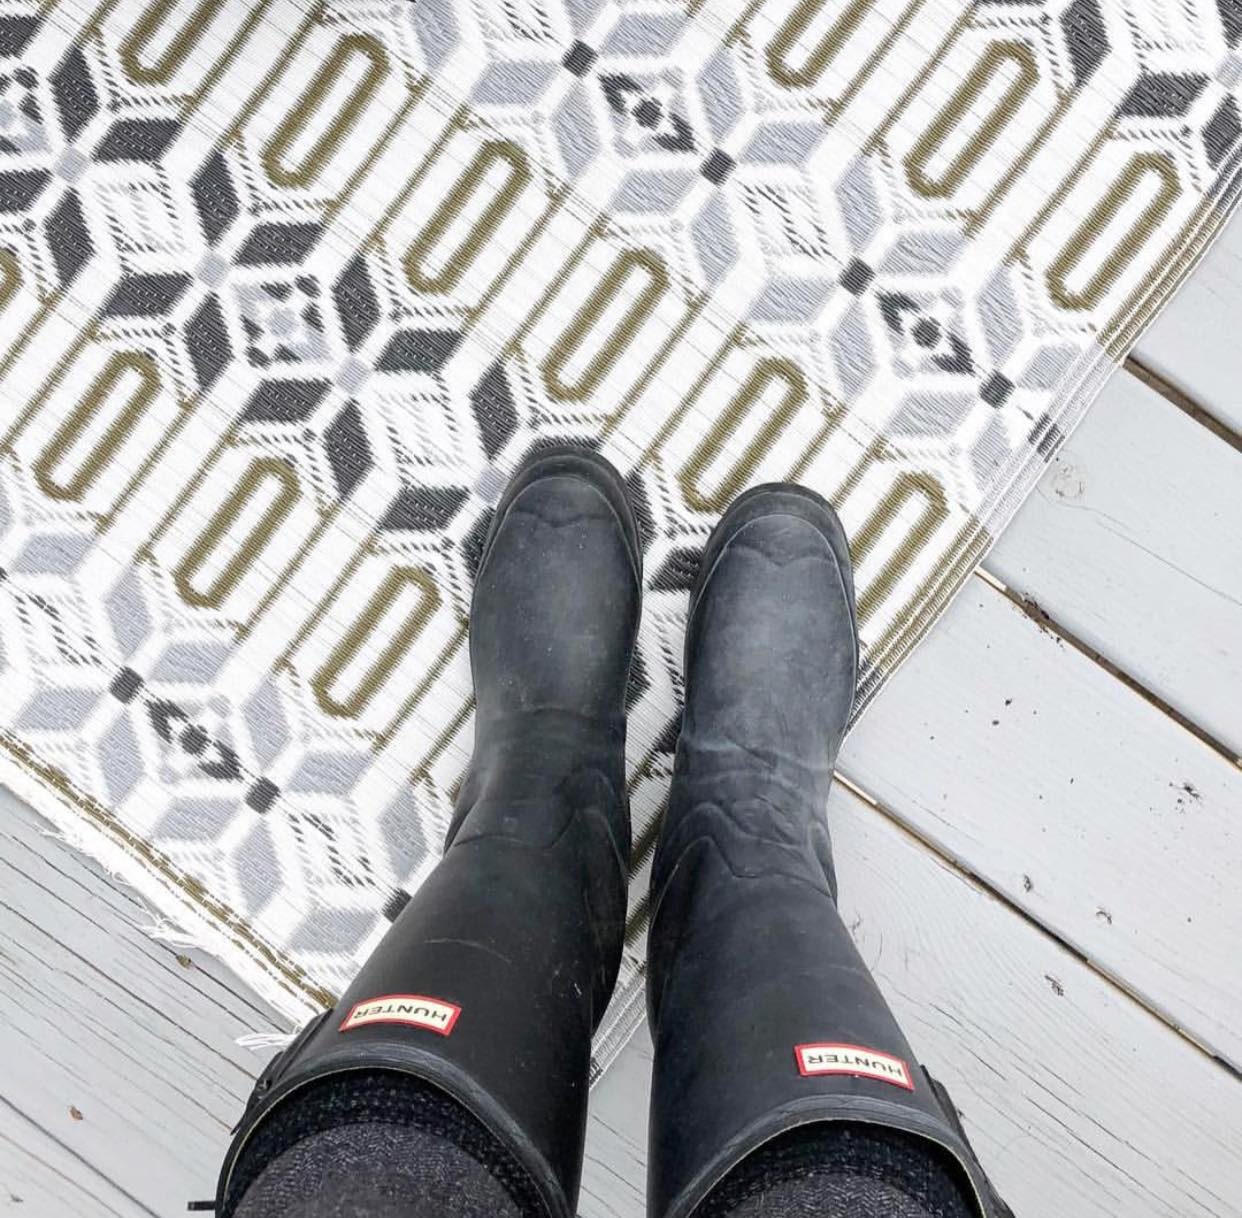 I found the perfect outdoor rug! It is waterproof and cute, so it's a great way to add some color to your deck or patio.